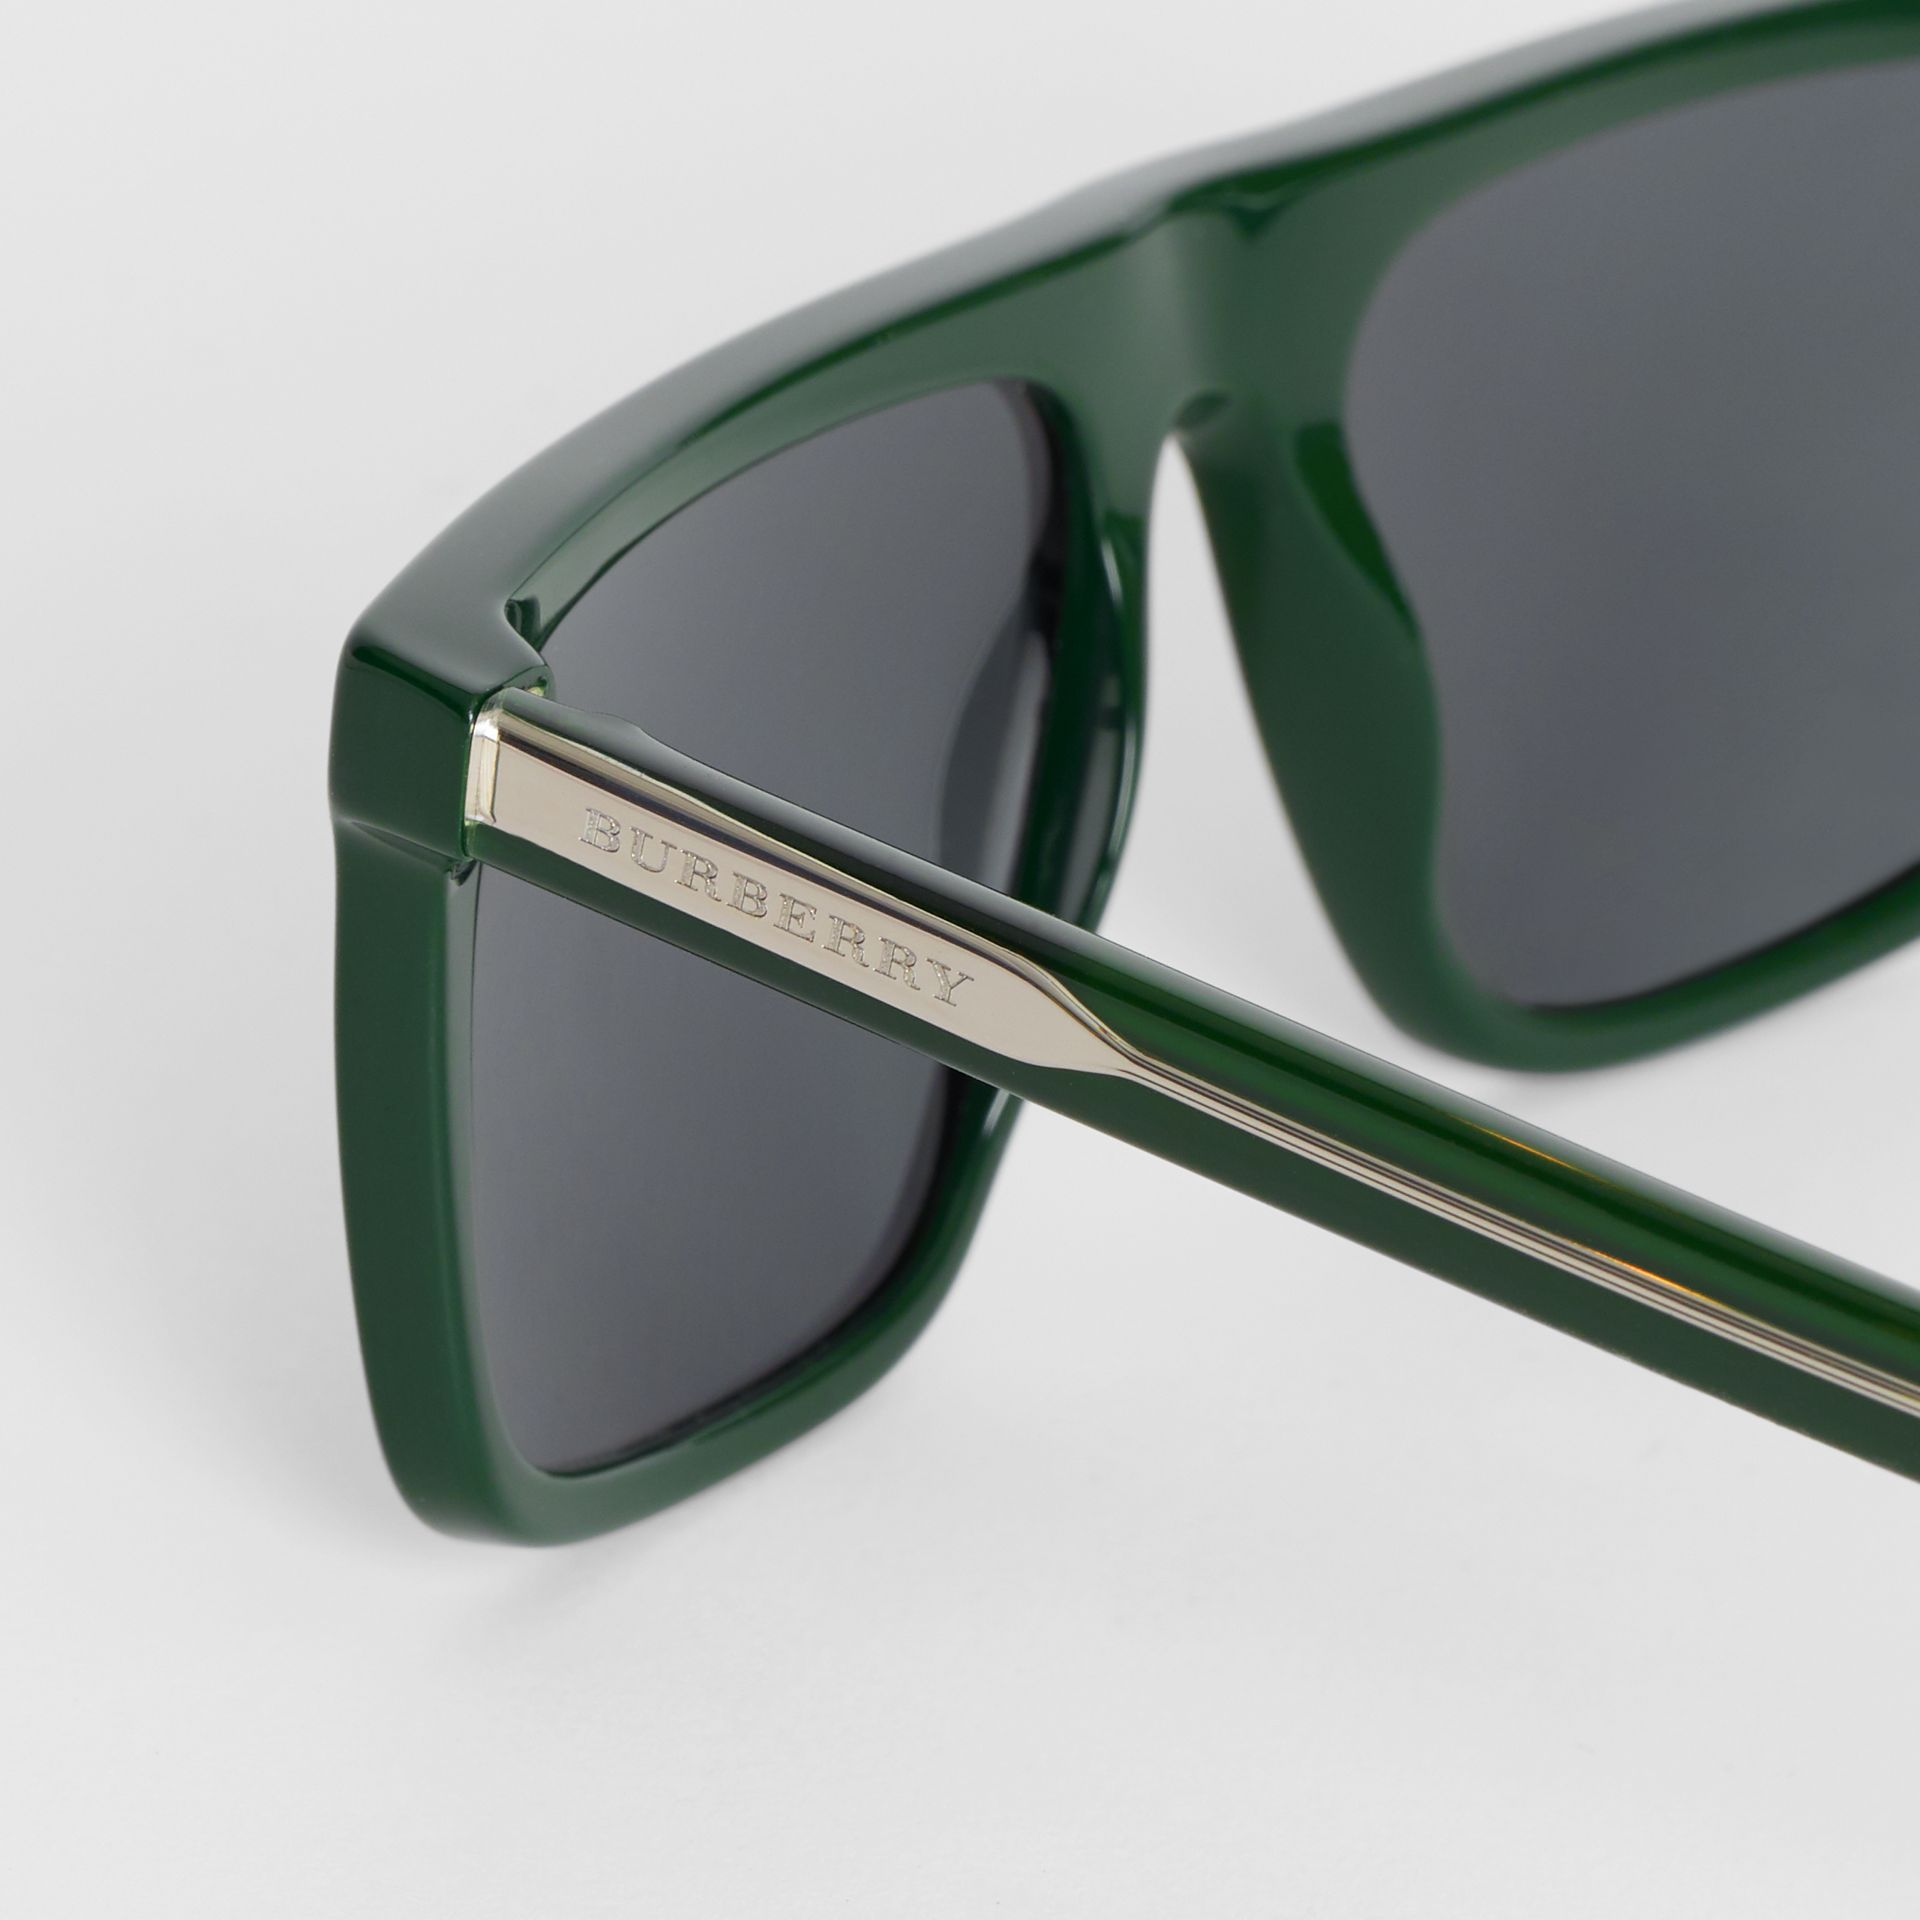 Straight-brow Sunglasses in Green - Men | Burberry - gallery image 1